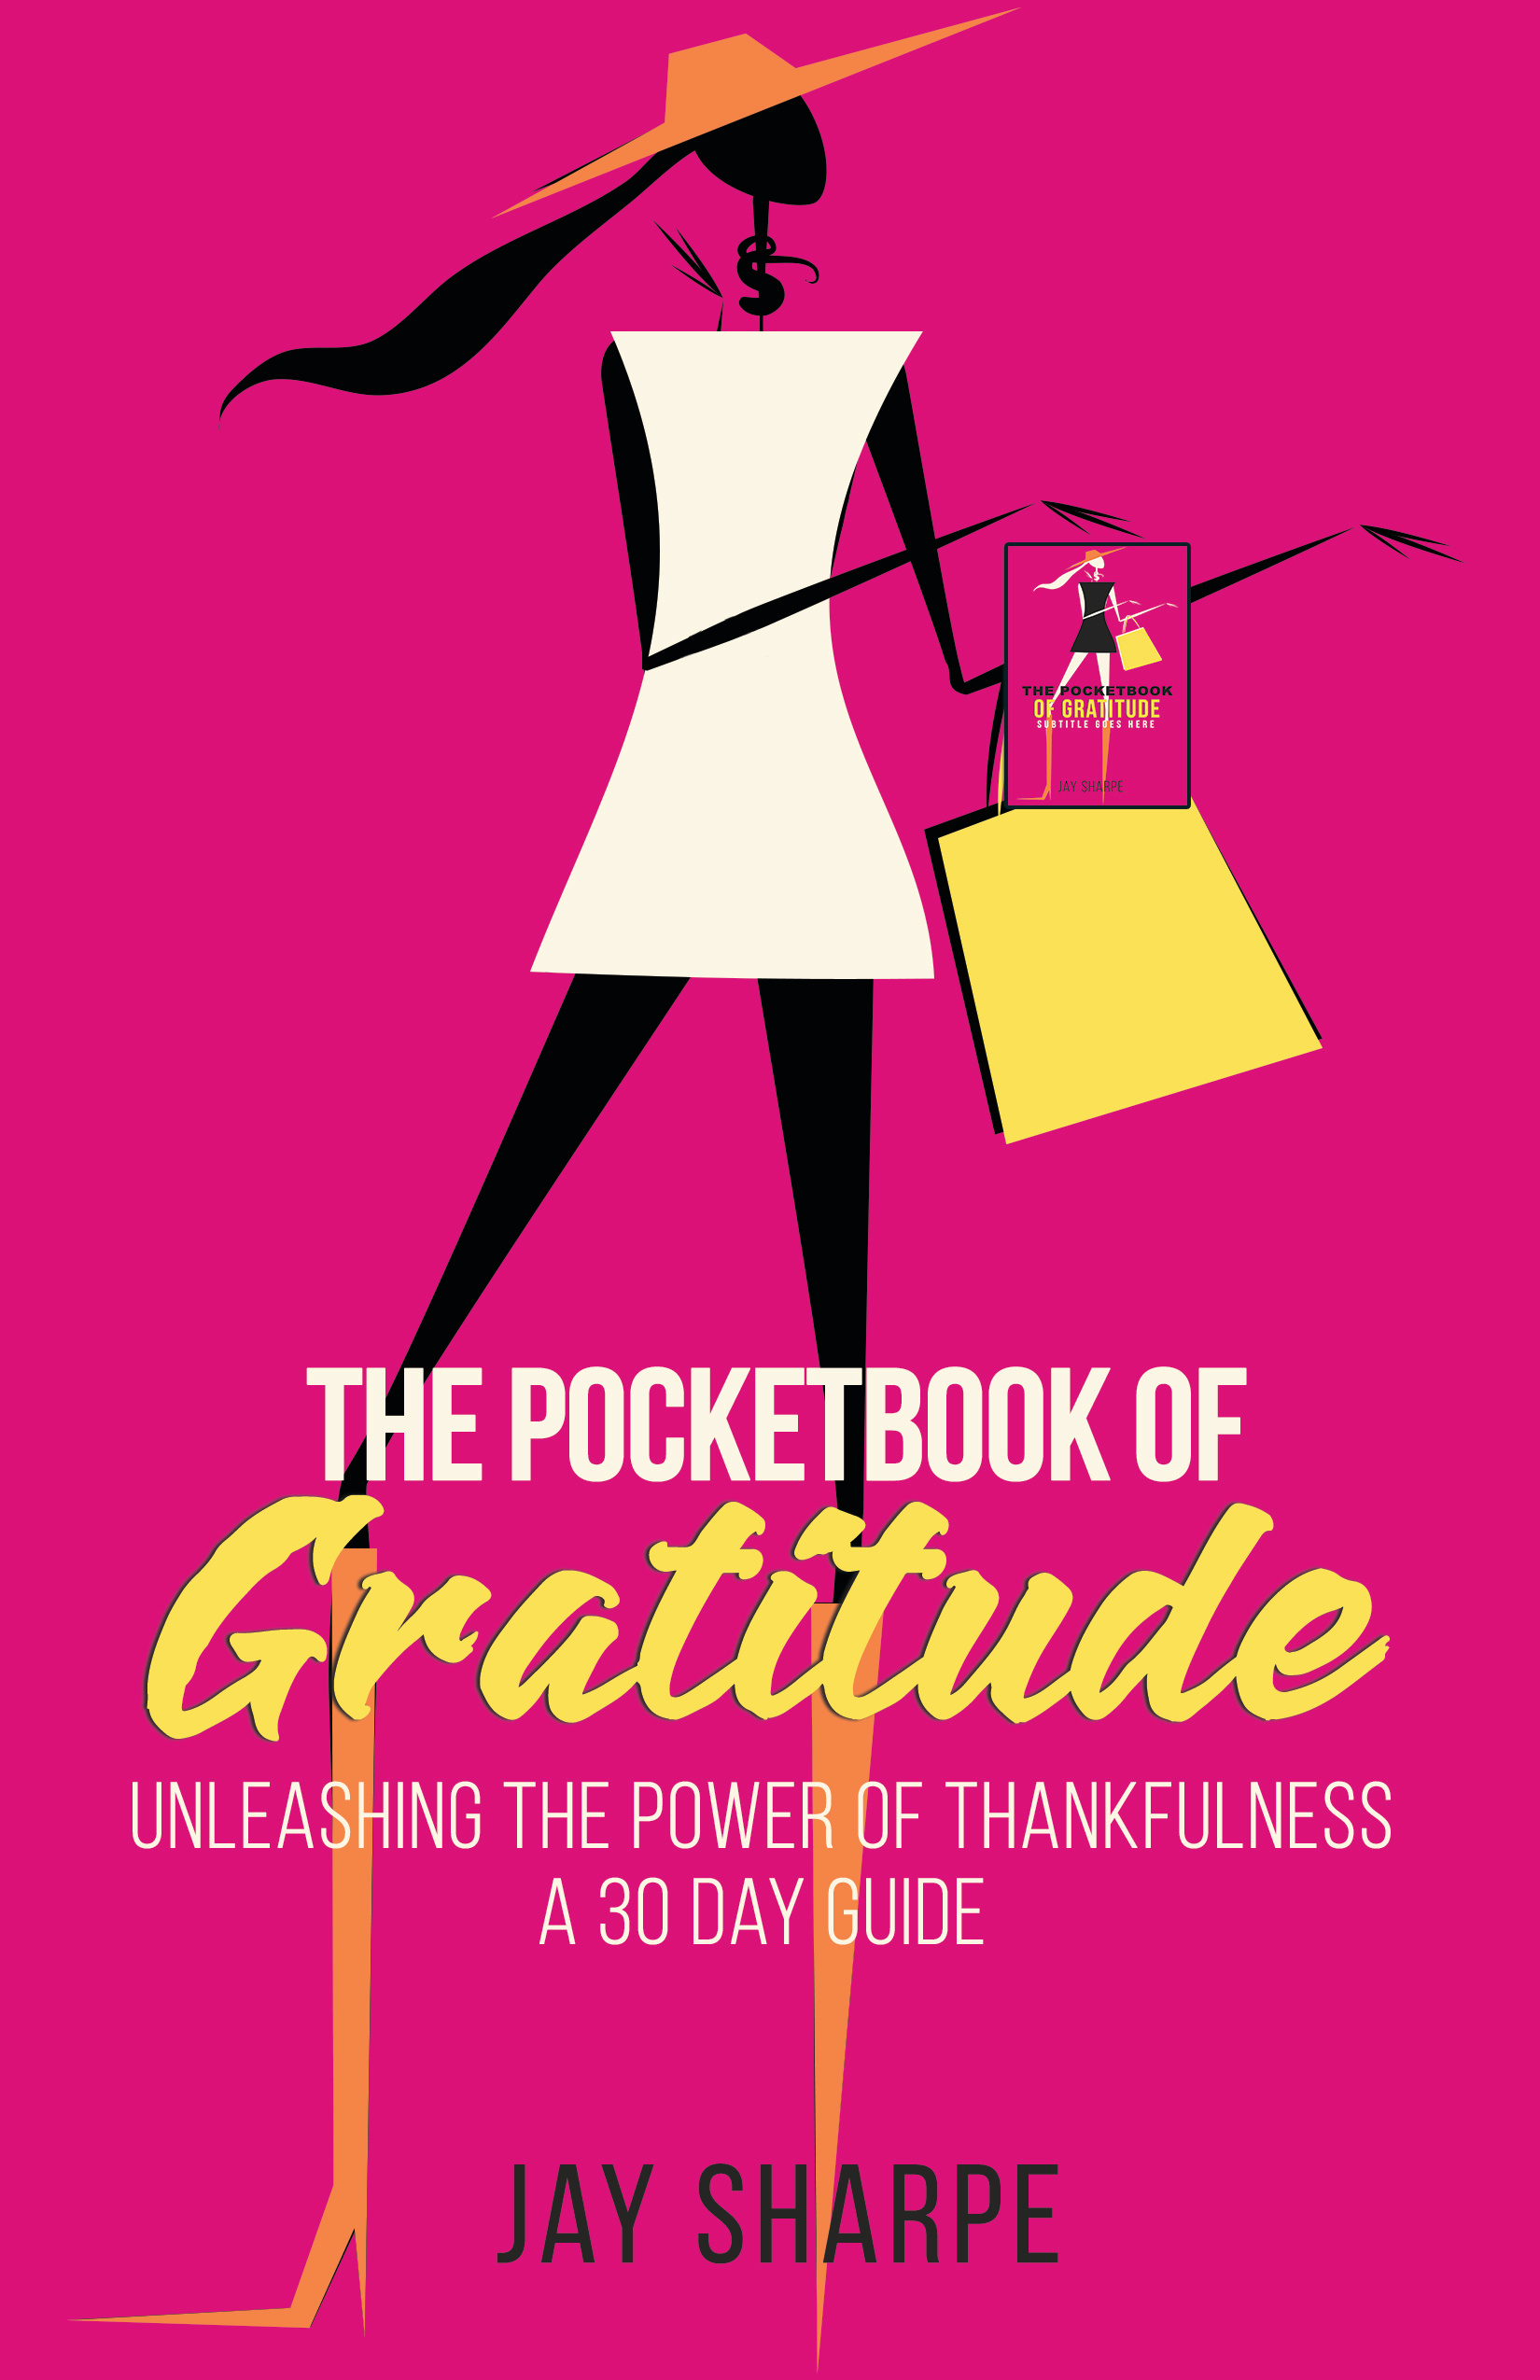 The PocketBook of Gratitude